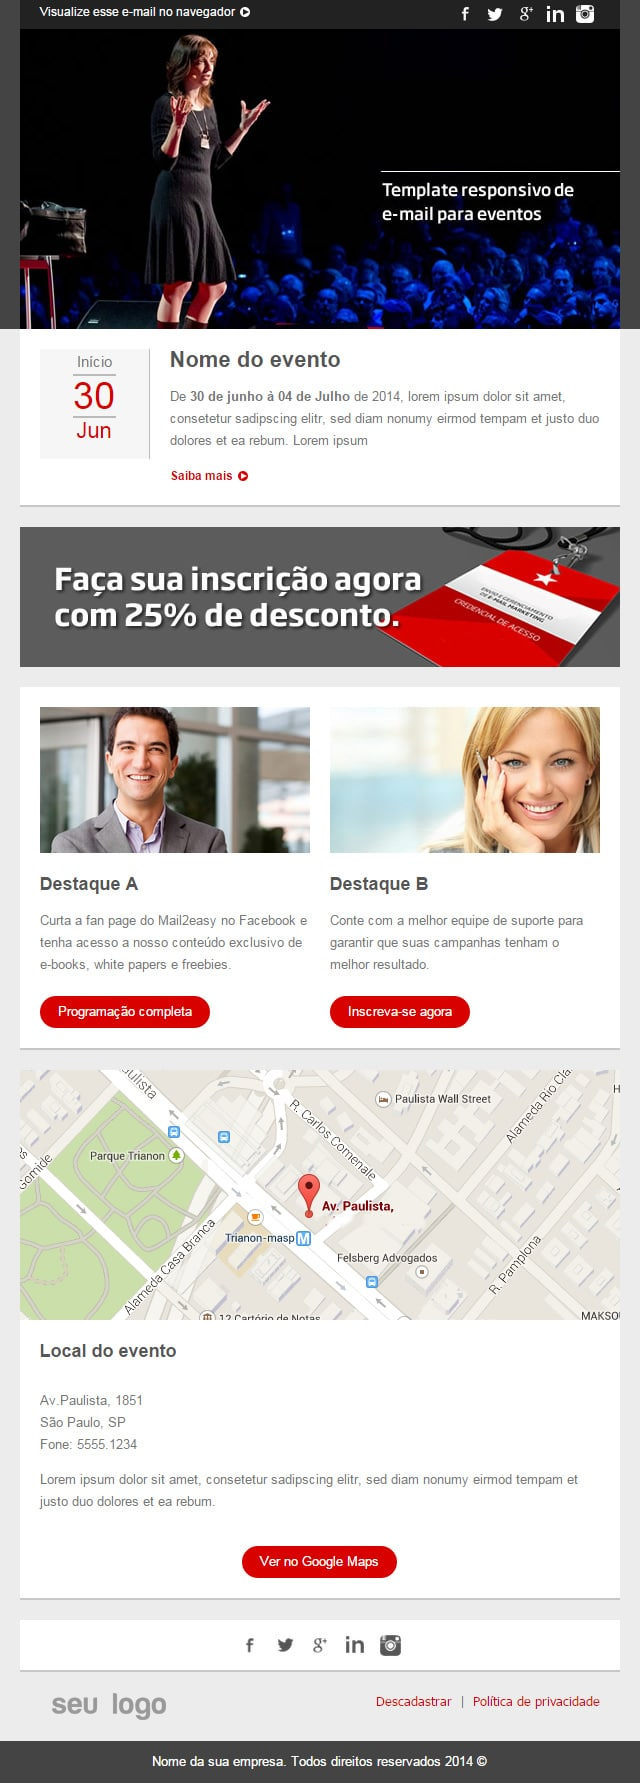 Templates responsivos para e-mail marketing